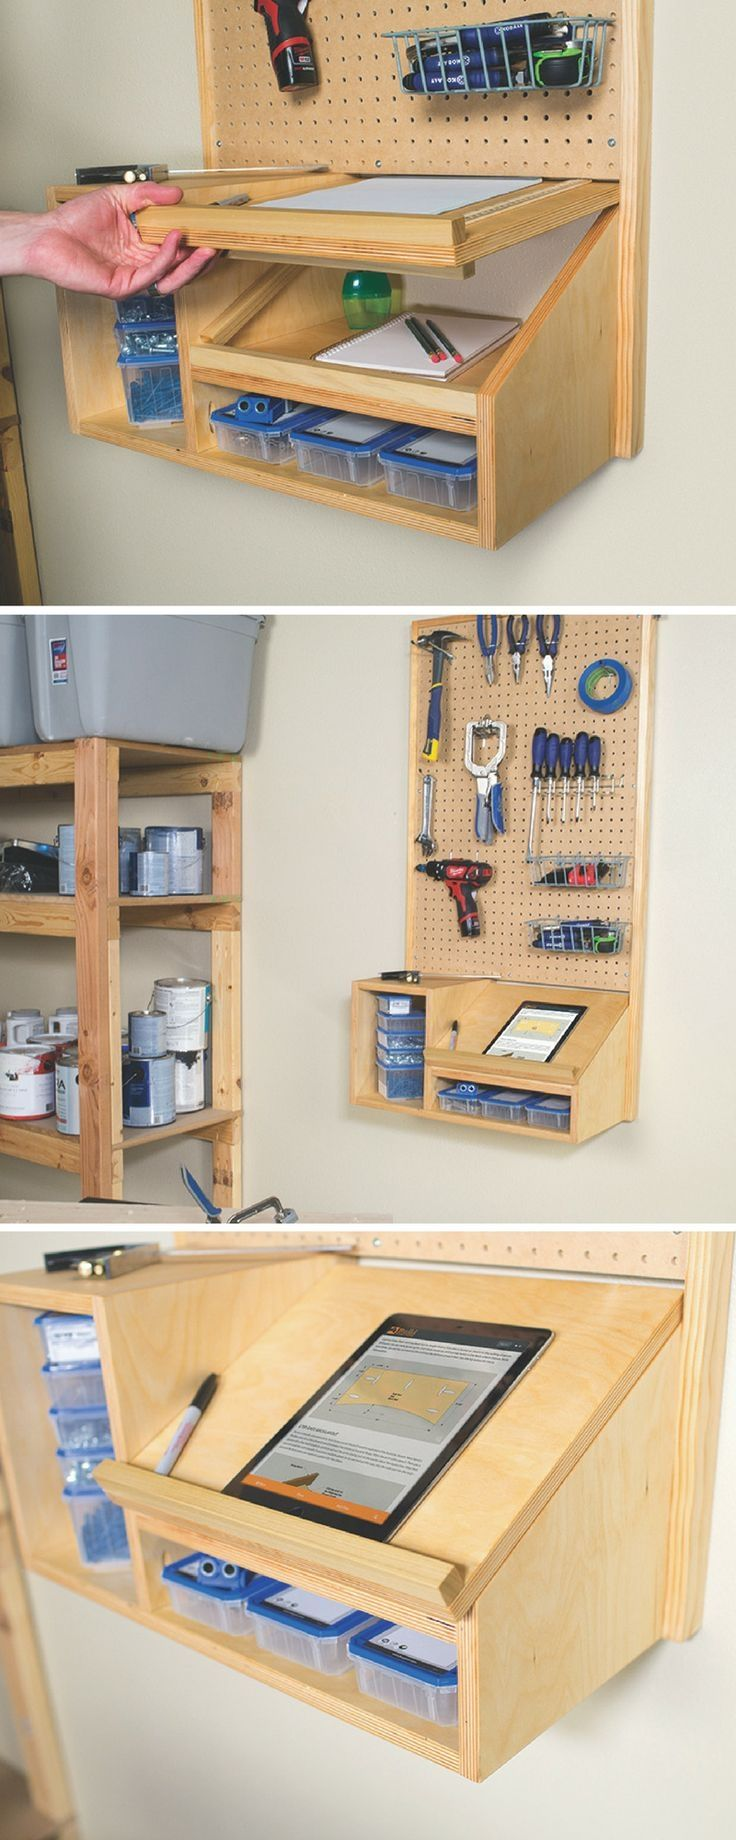 124 Nice Pegboard Implementation Ideas Https Www  # Muebles Sortimo